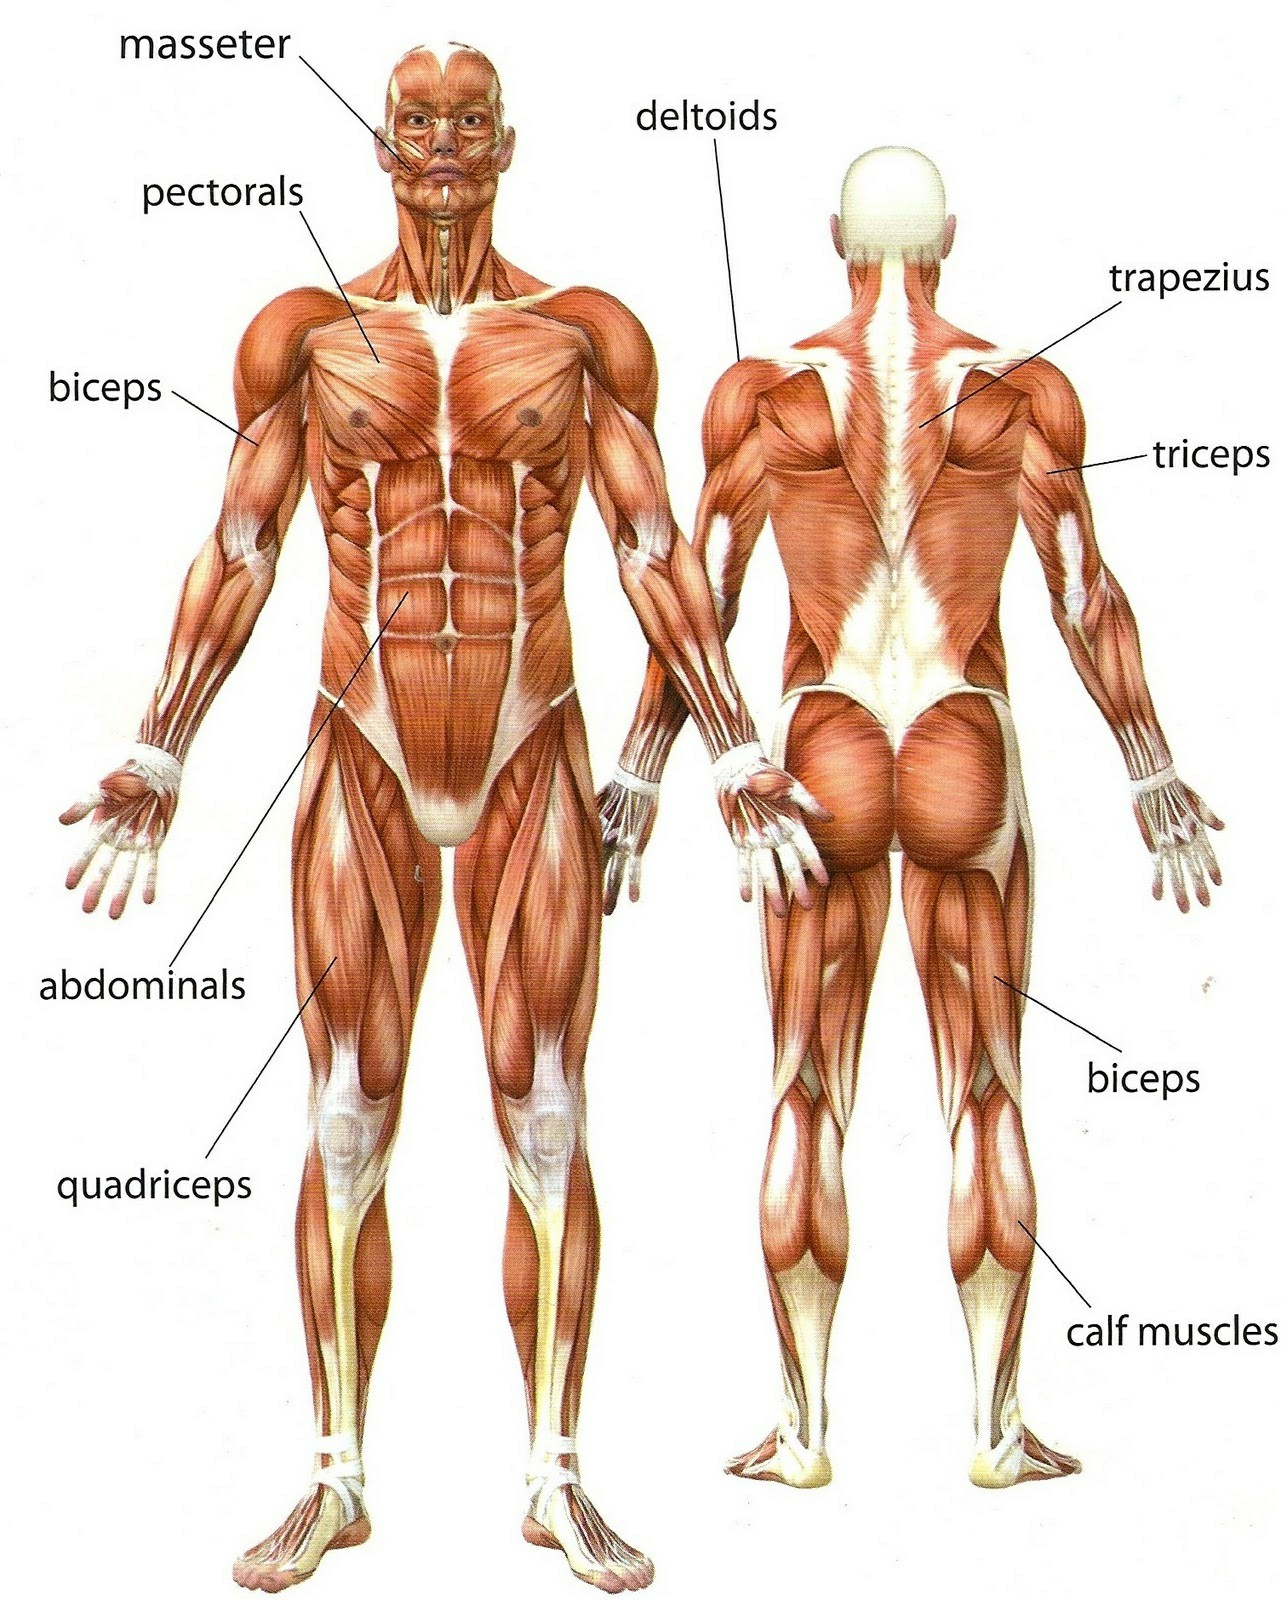 Muscle Pictures Of The Human Body Muscle Body Anatomy | Mell.tk Pictures Wallpapers